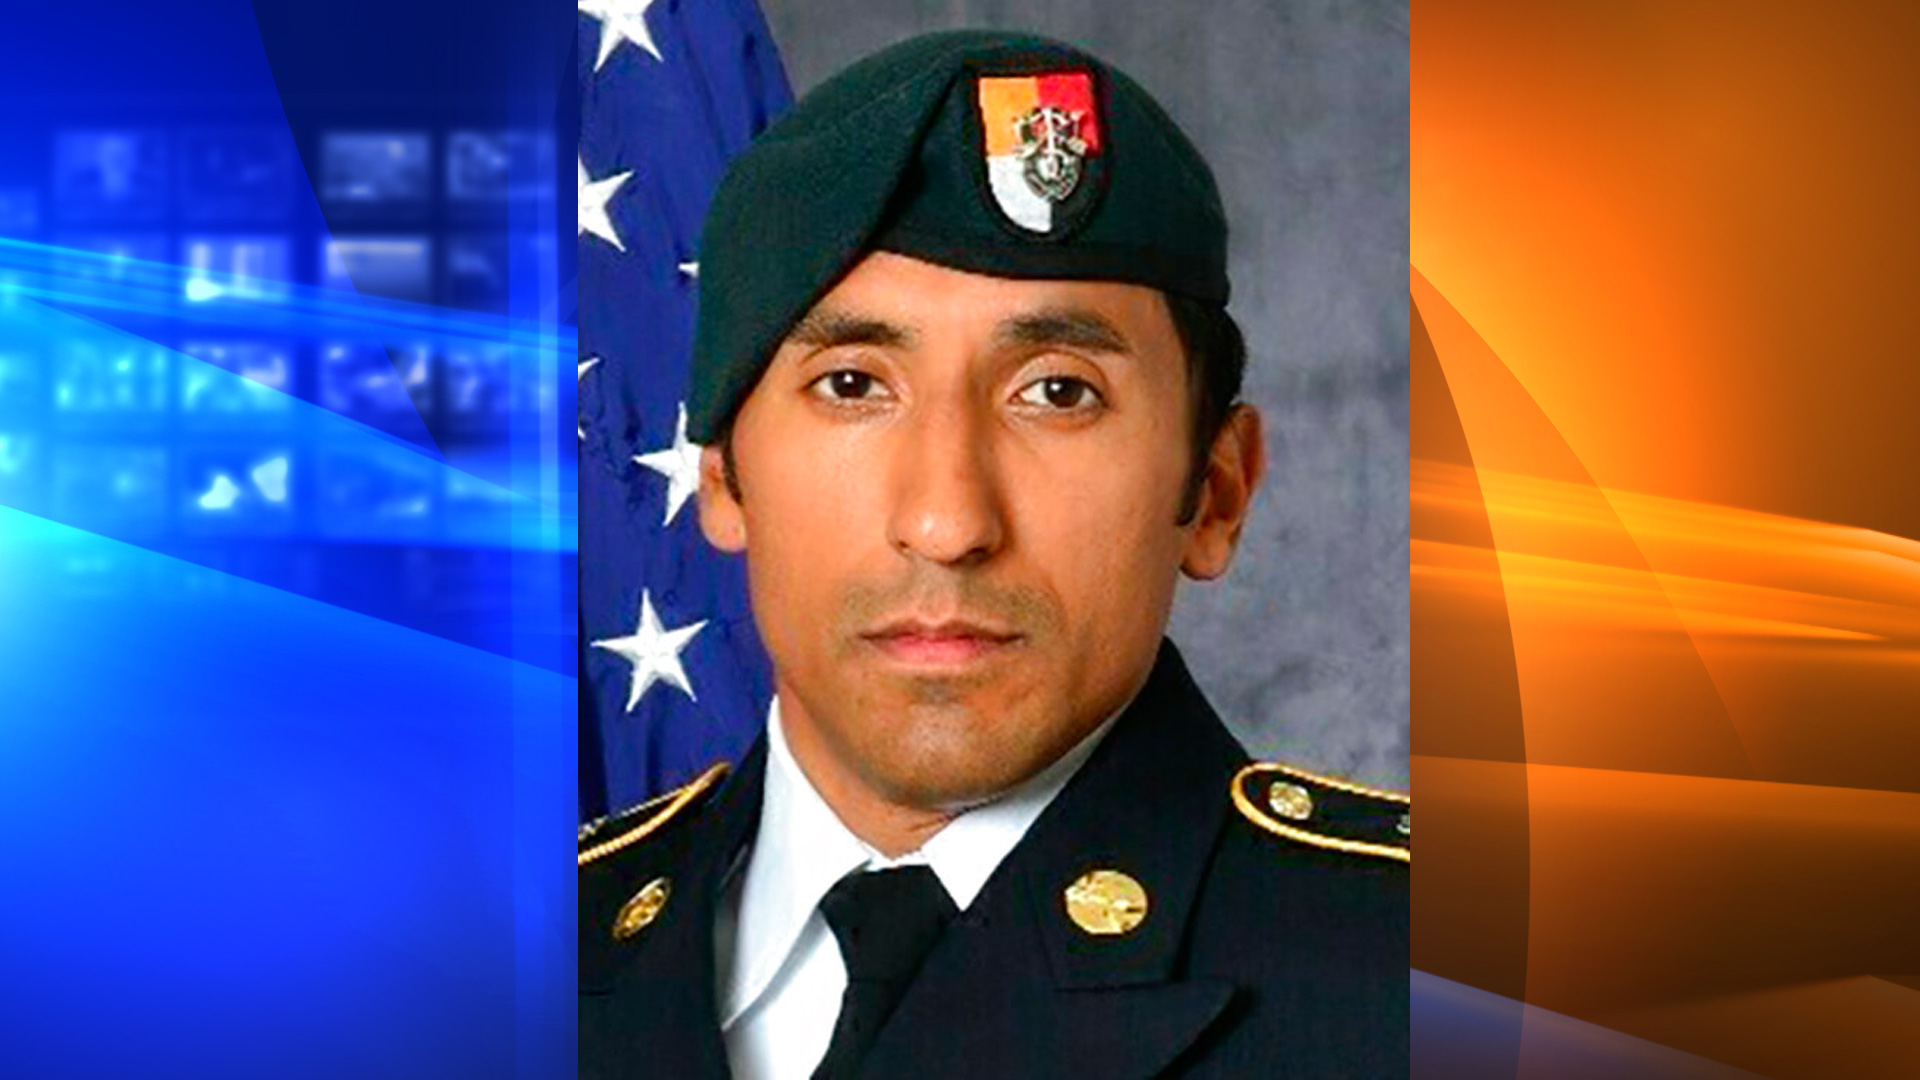 This undated photo provided by the U.S. Army shows U.S. Army Staff Sgt. Logan Melgar Green Beret, who died from non-combat related injuries in Mali in June 2017.